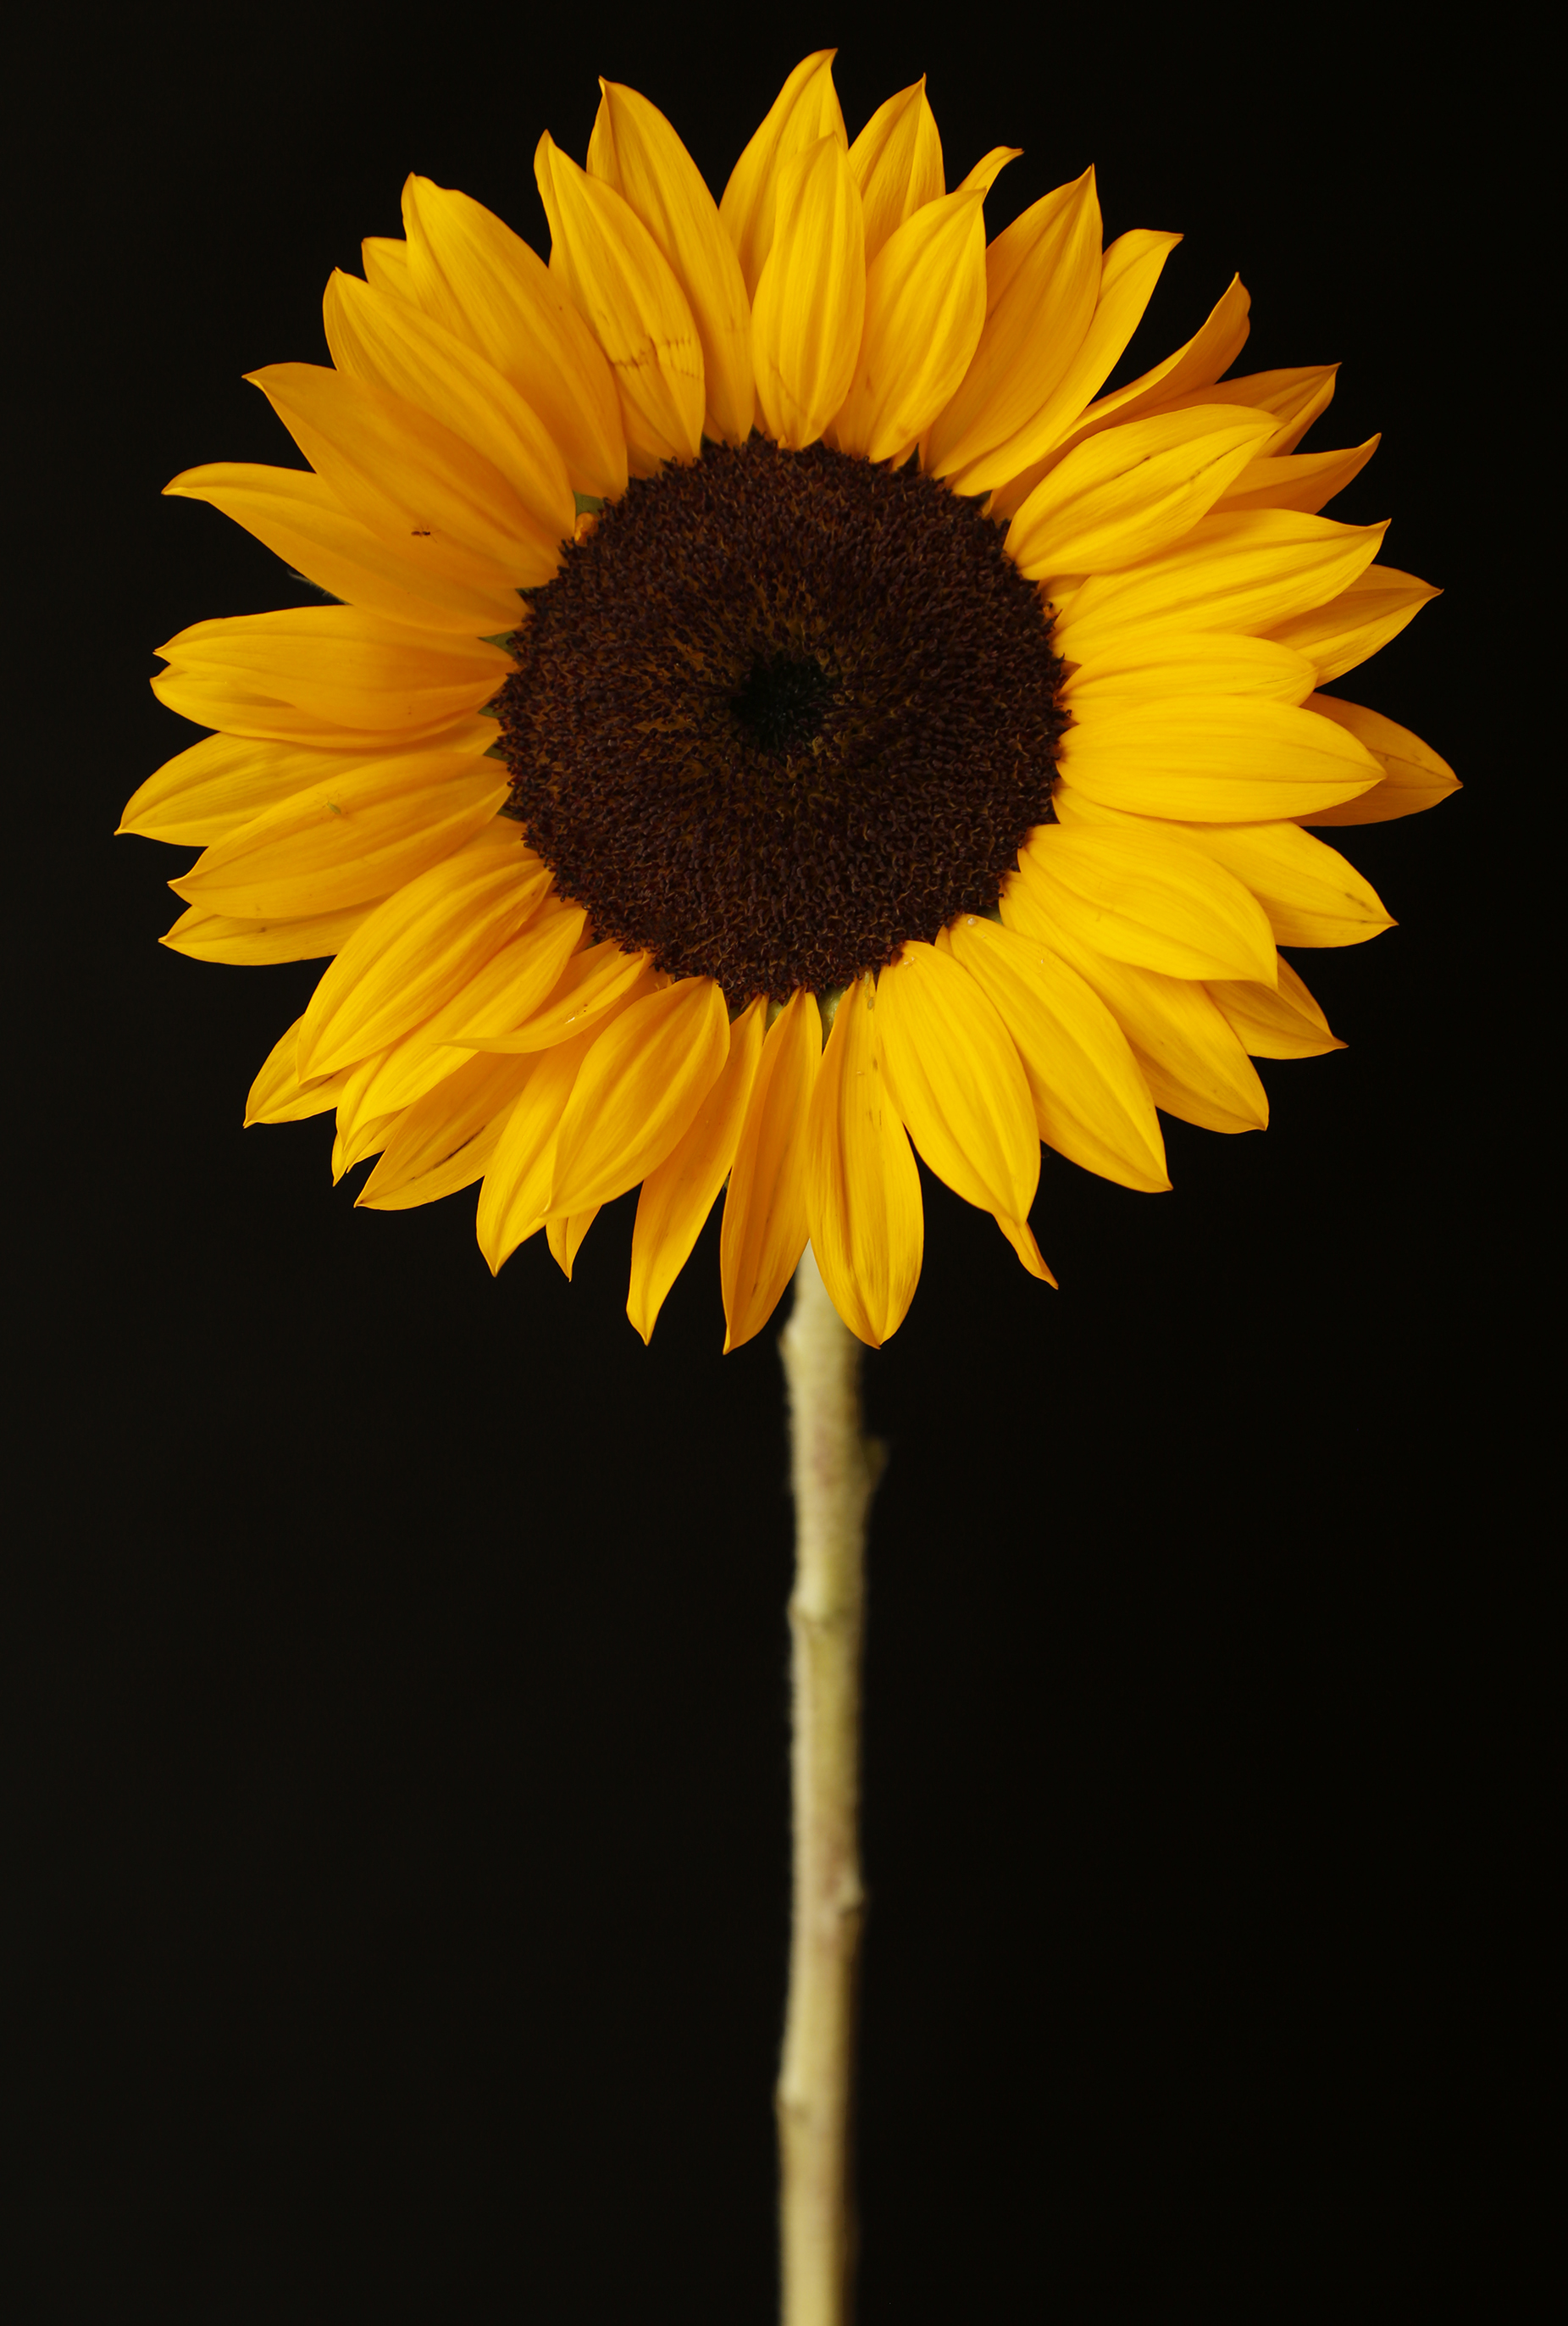 sunflower1.jpg